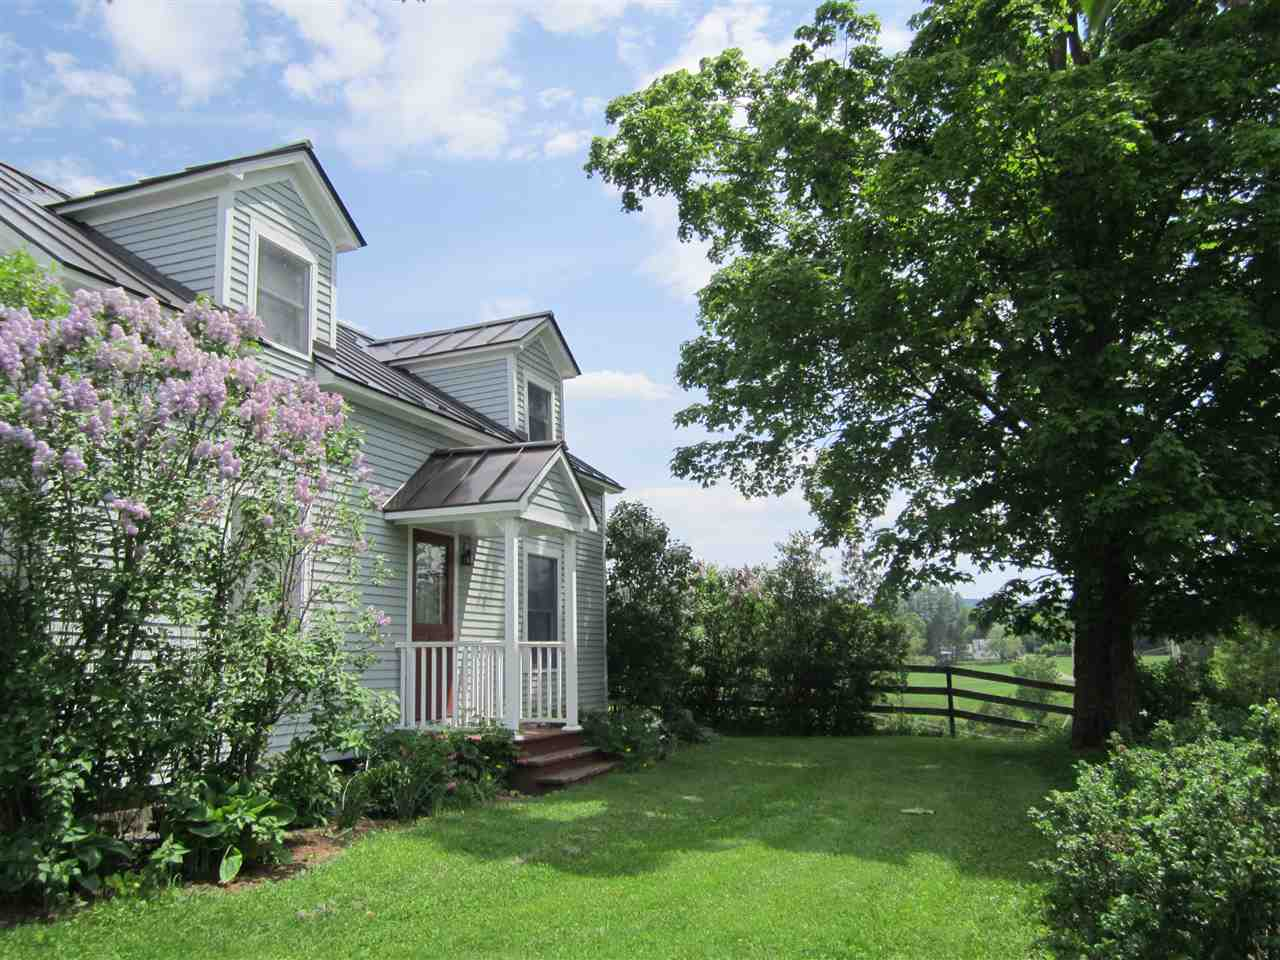 Front of House with Lilacs